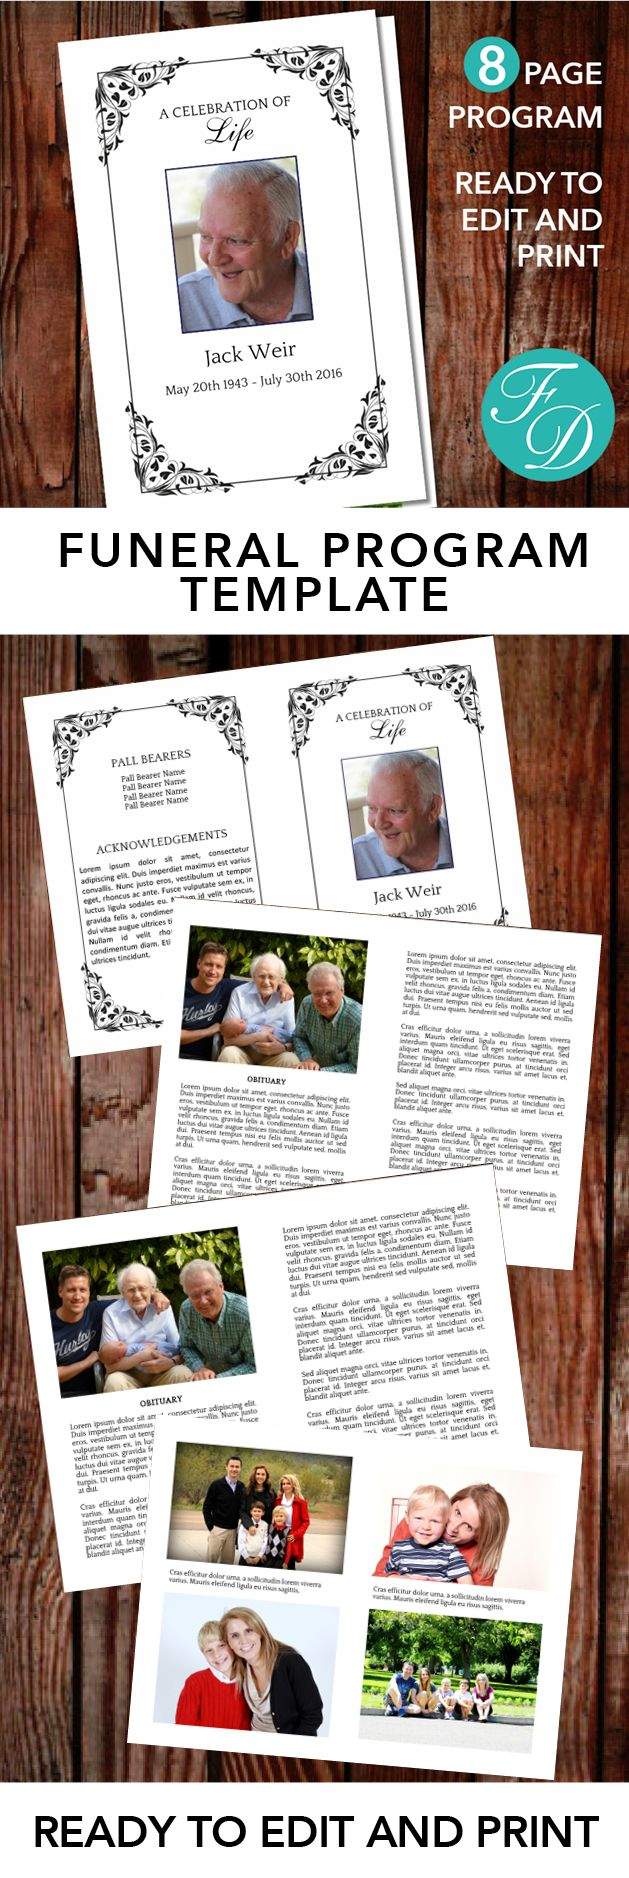 Black Printable Funeral program ready to edit & print. Simply purchase your funeral templates, download, edit with Microsoft Word and print. #obituarytemplate #memorialprogram #funeralprograms #funeraltemplate #printableprogram #celebrationoflife #funeralprogamtemplates